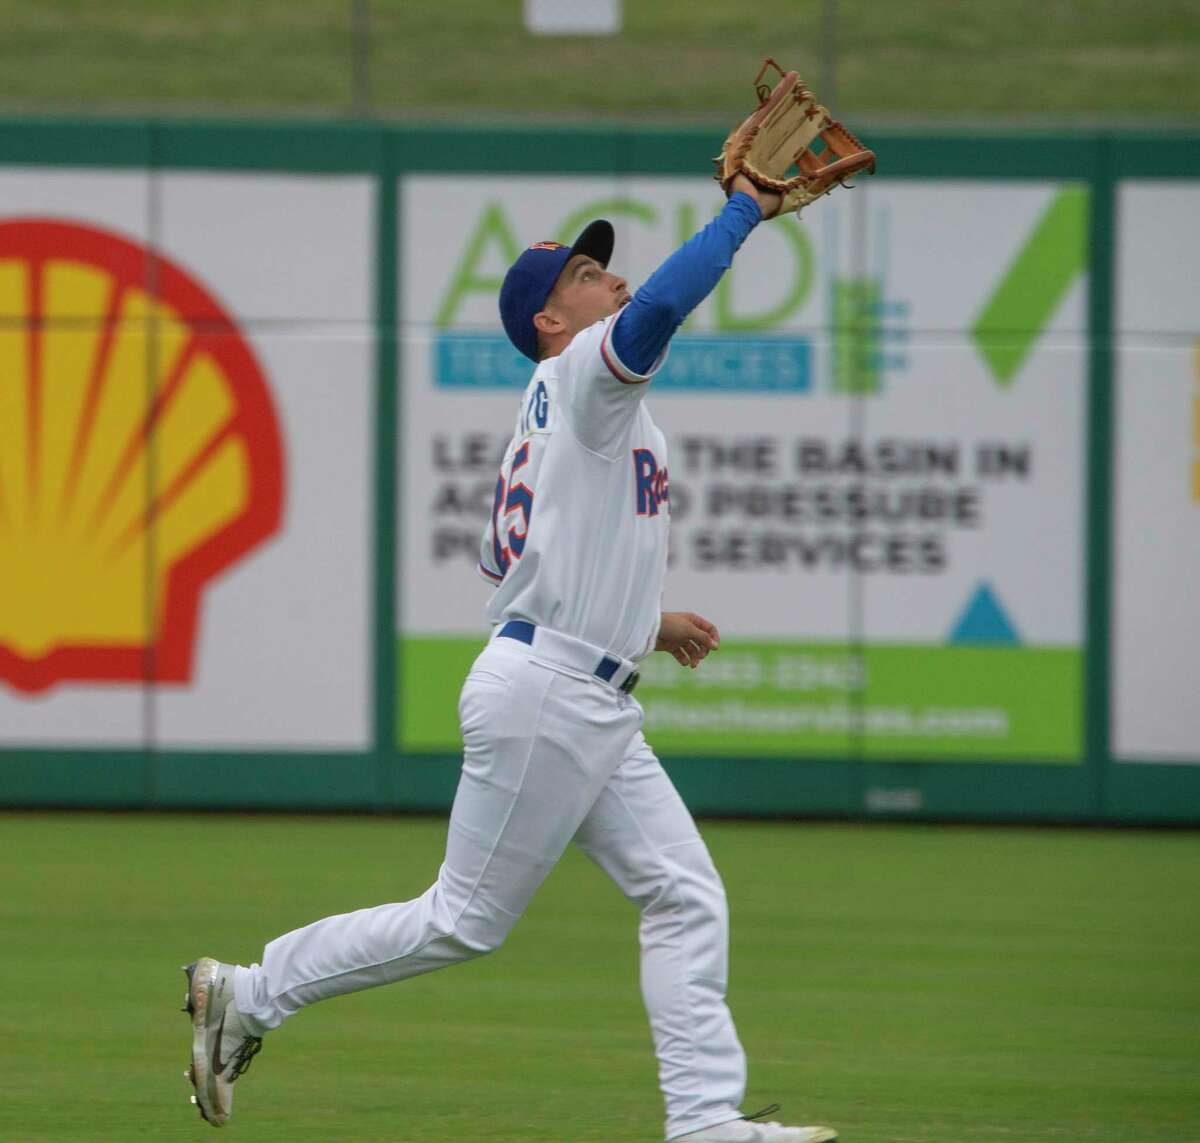 Midland RockHounds' Chase Calabuig runs in to make a catch for an out 05/11/2021 against San Antonio Missions at Momentum Bank Ballpark. Tim Fischer/Reporter-Telegram